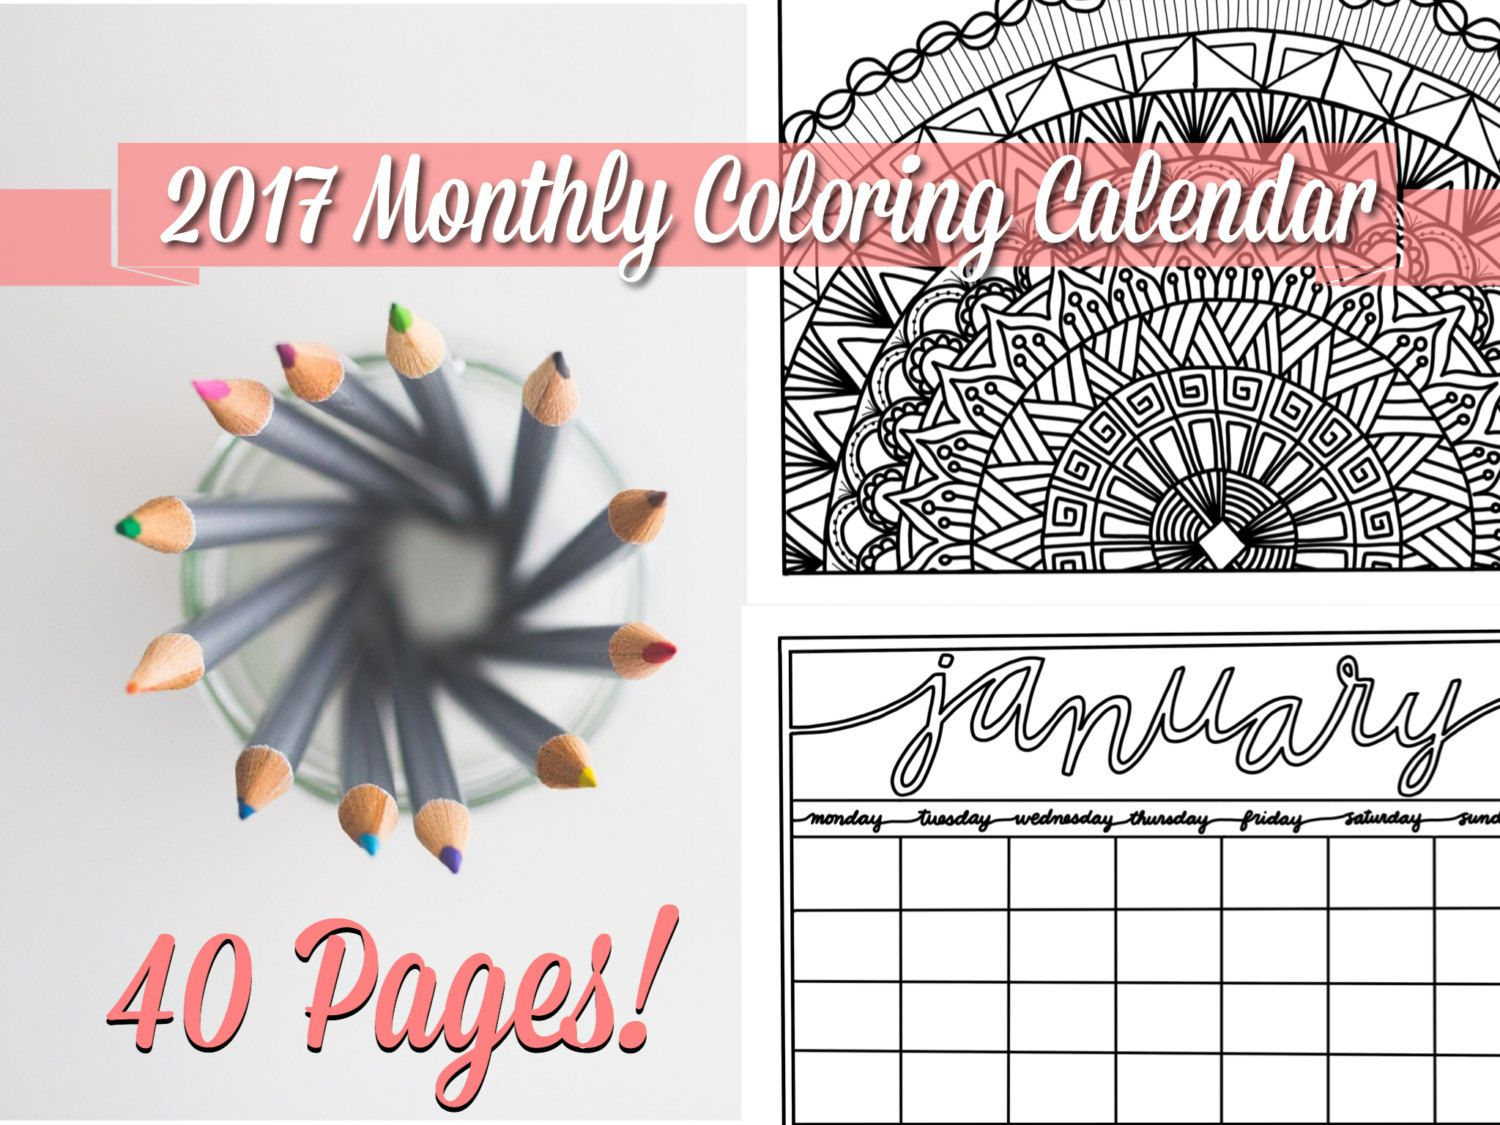 Swear word coloring book sarah bigwood - Coloring Calendar Monthly Planner 2017 Undated Mandalas Printable Pages Gifts For Her Office Organizer Zip File Digital Download